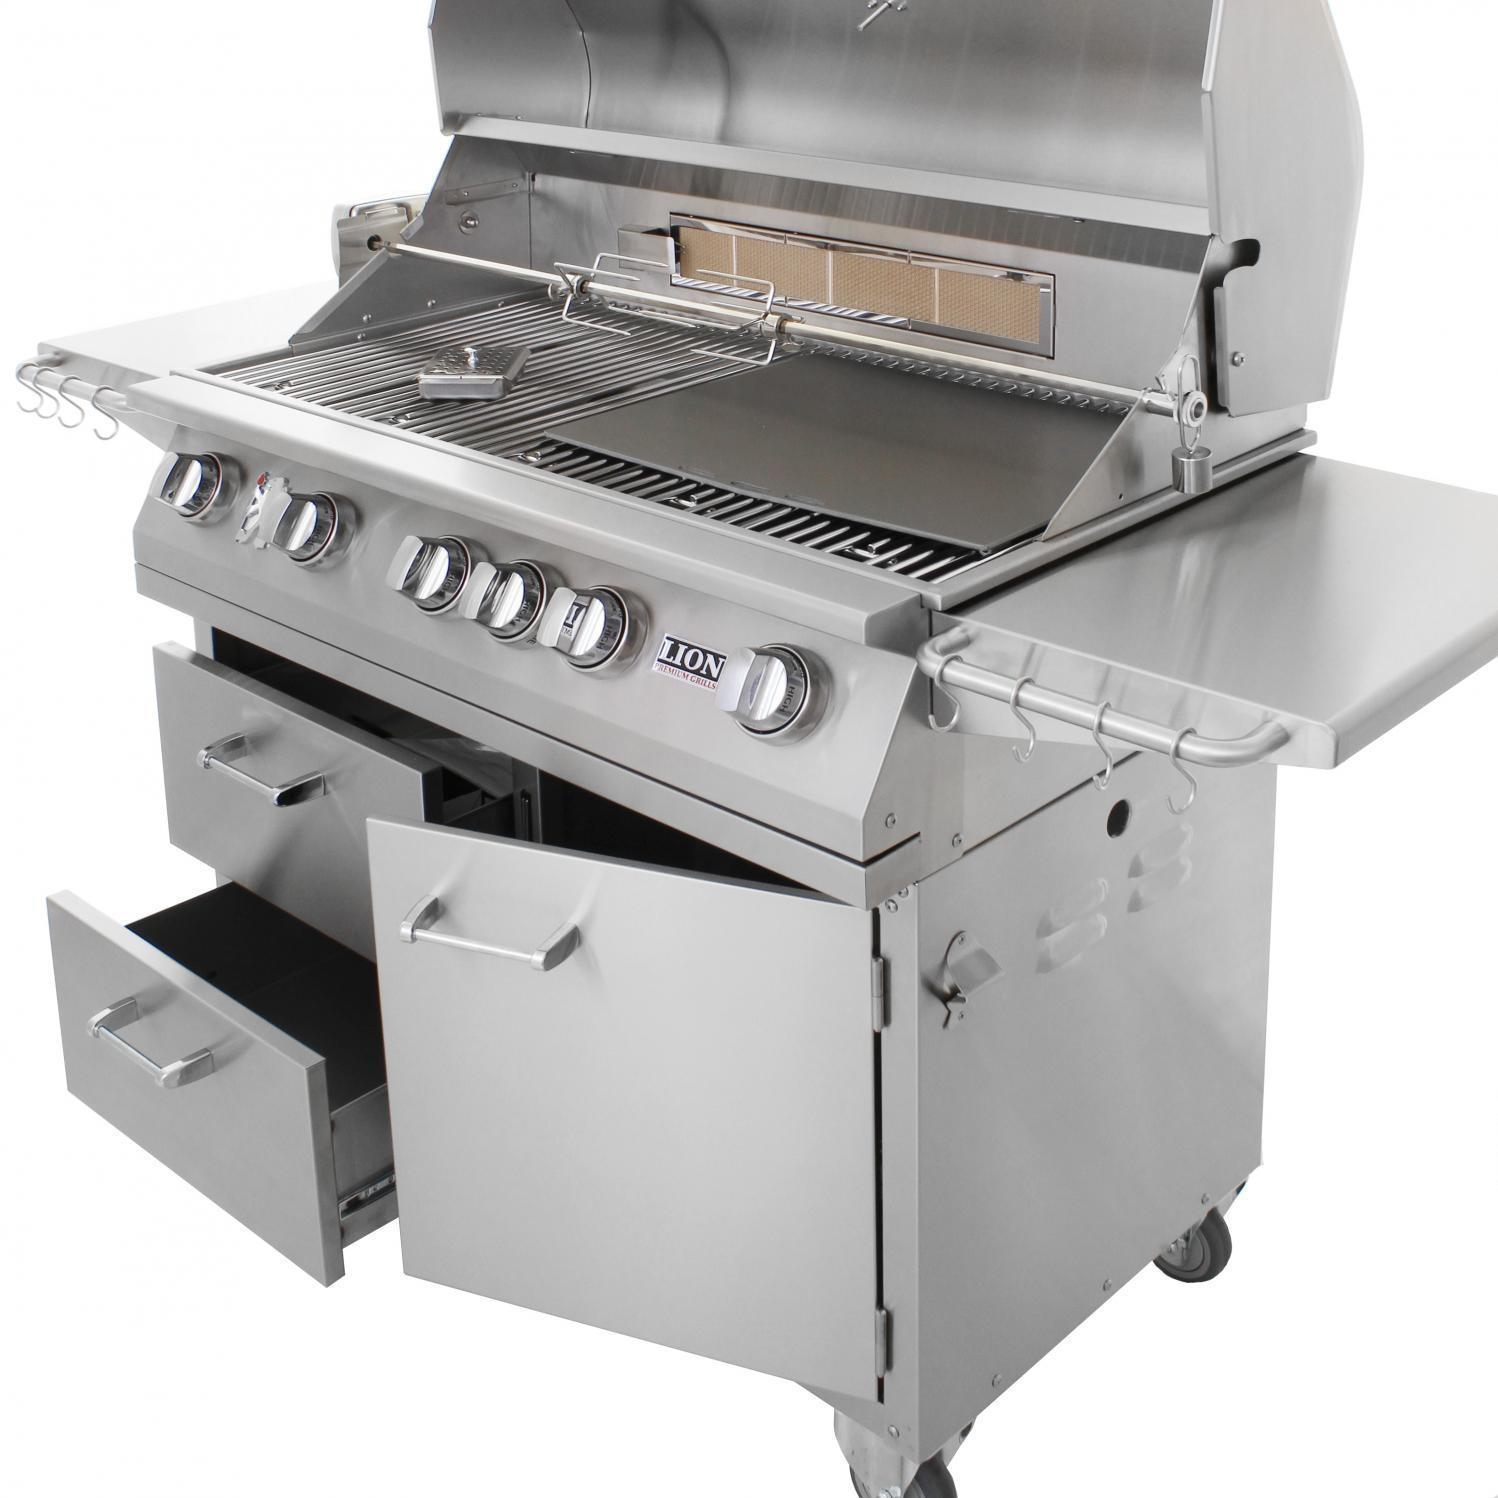 Lion 40 Inch Gas Grill L90000 Stainless Steel